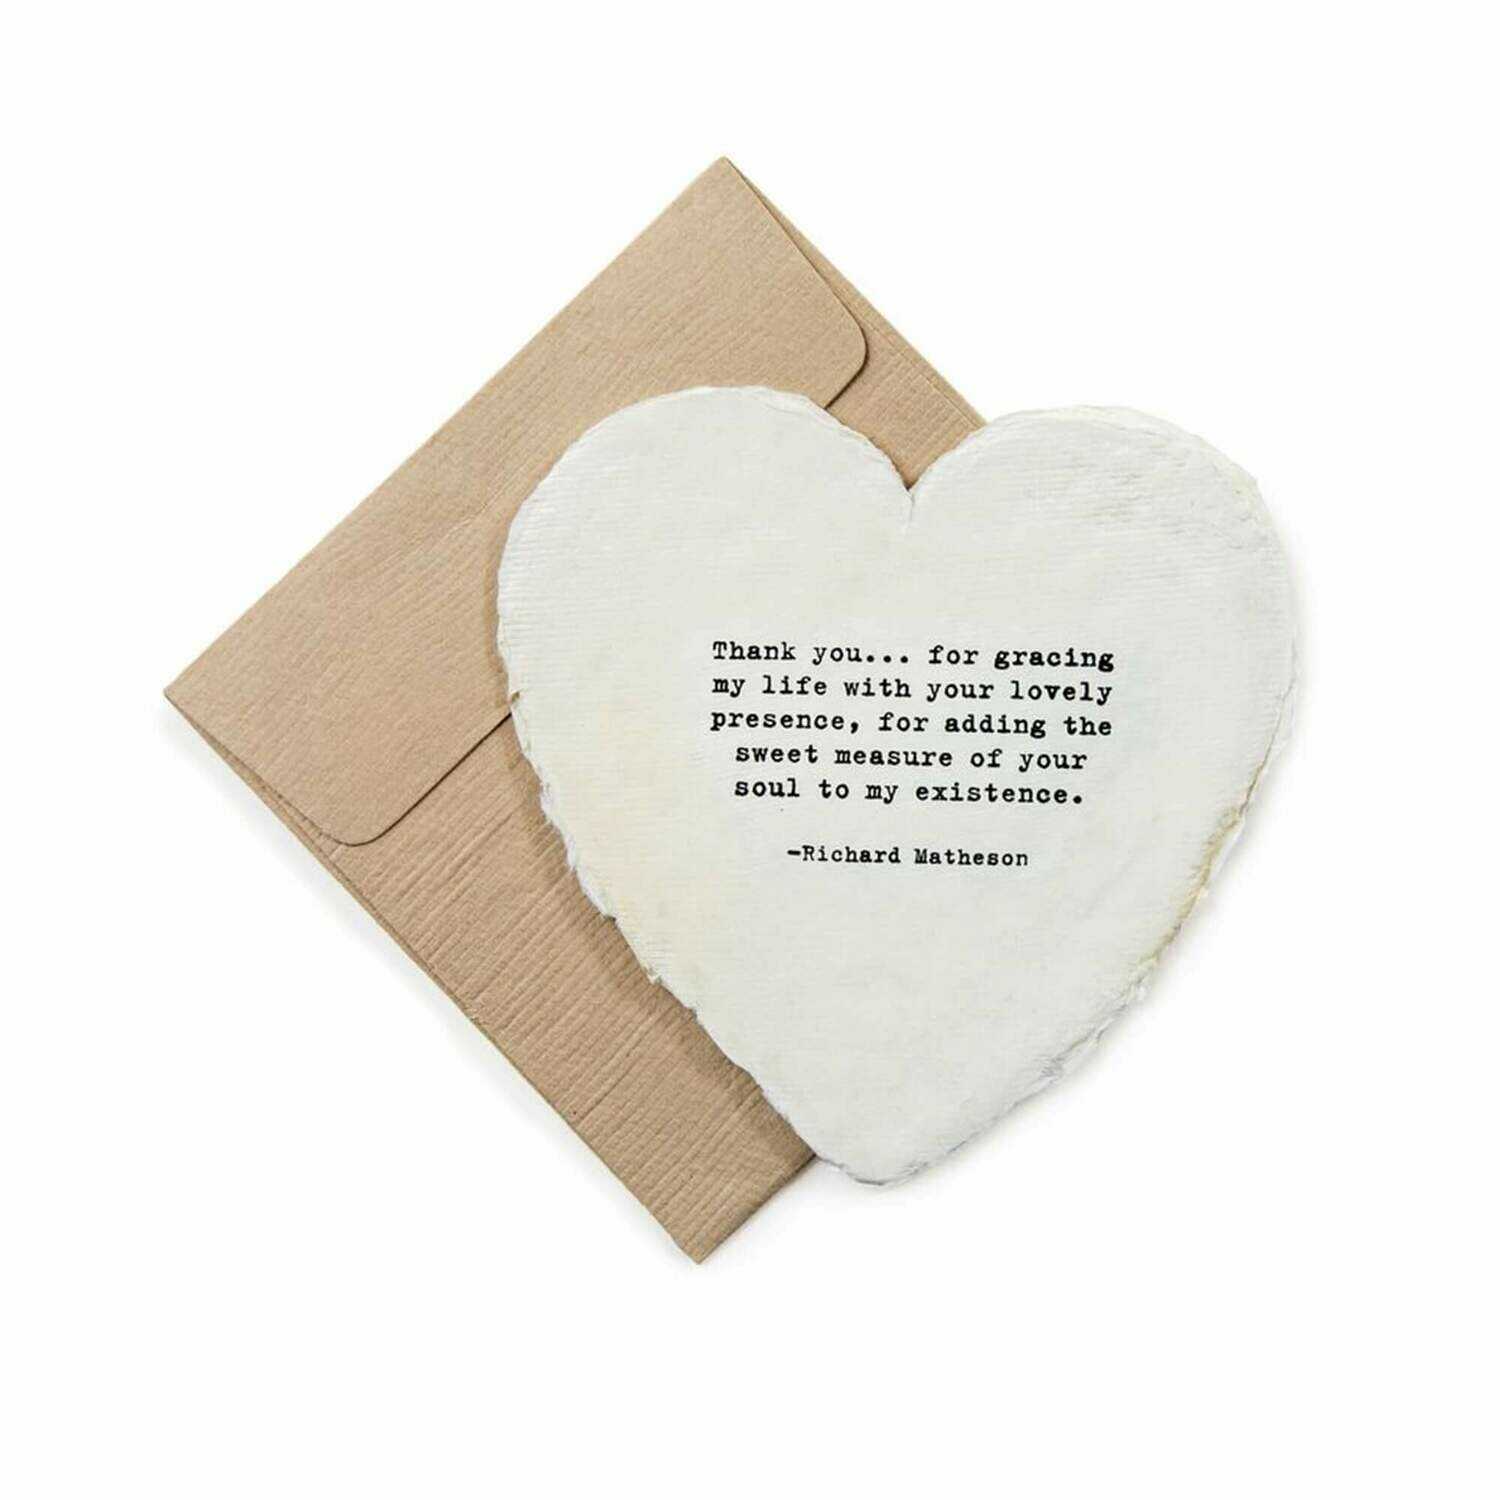 Mini Heart Shaped Card & Envelope-Thank you...for gracing my life